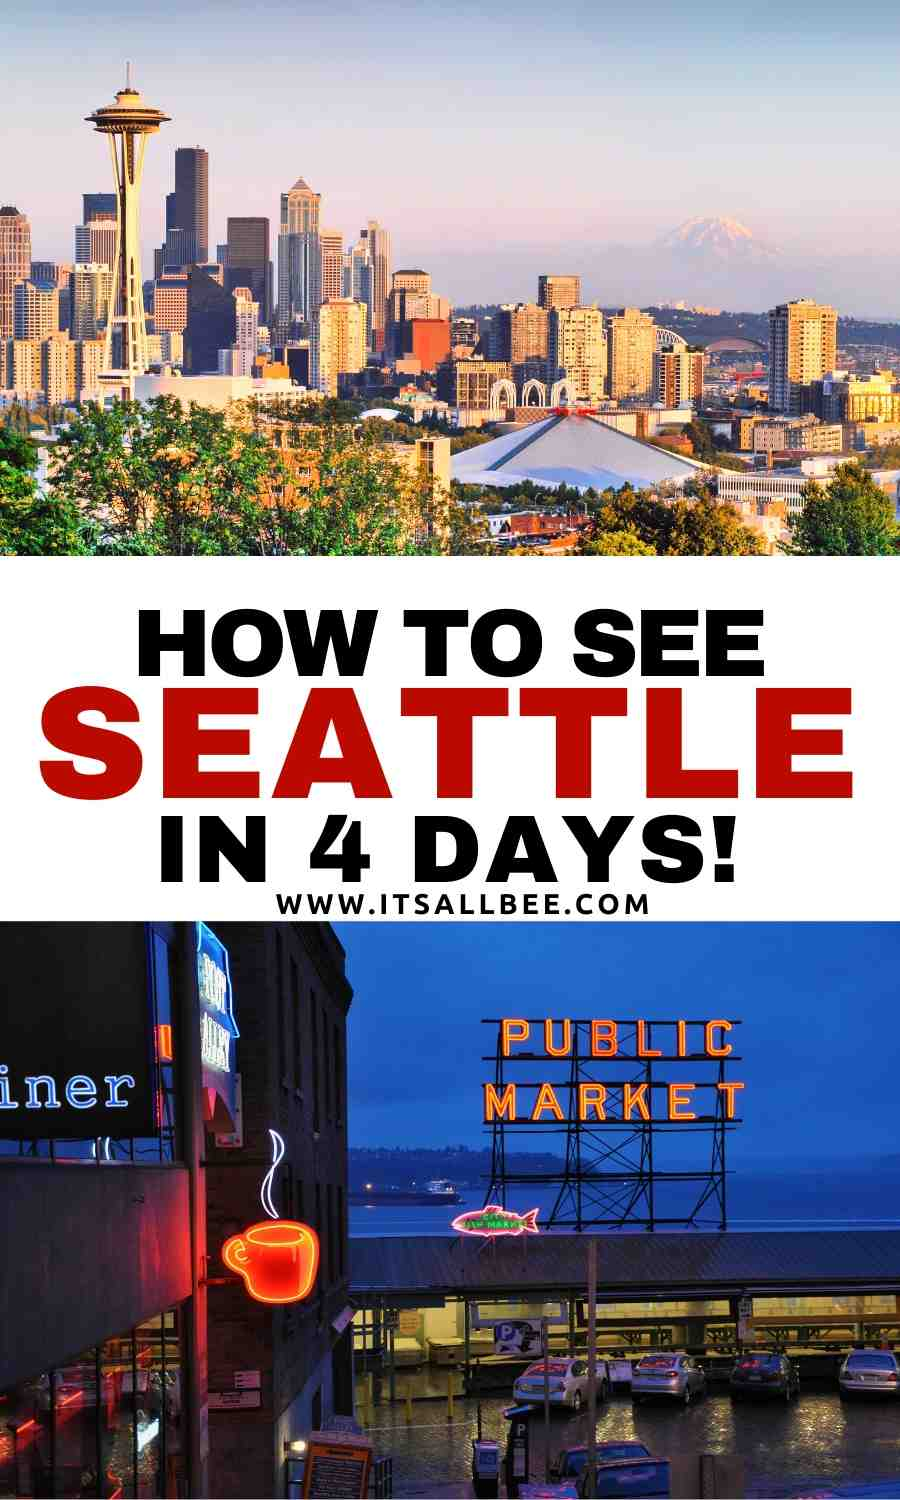 What to do in Seattle in 4 days